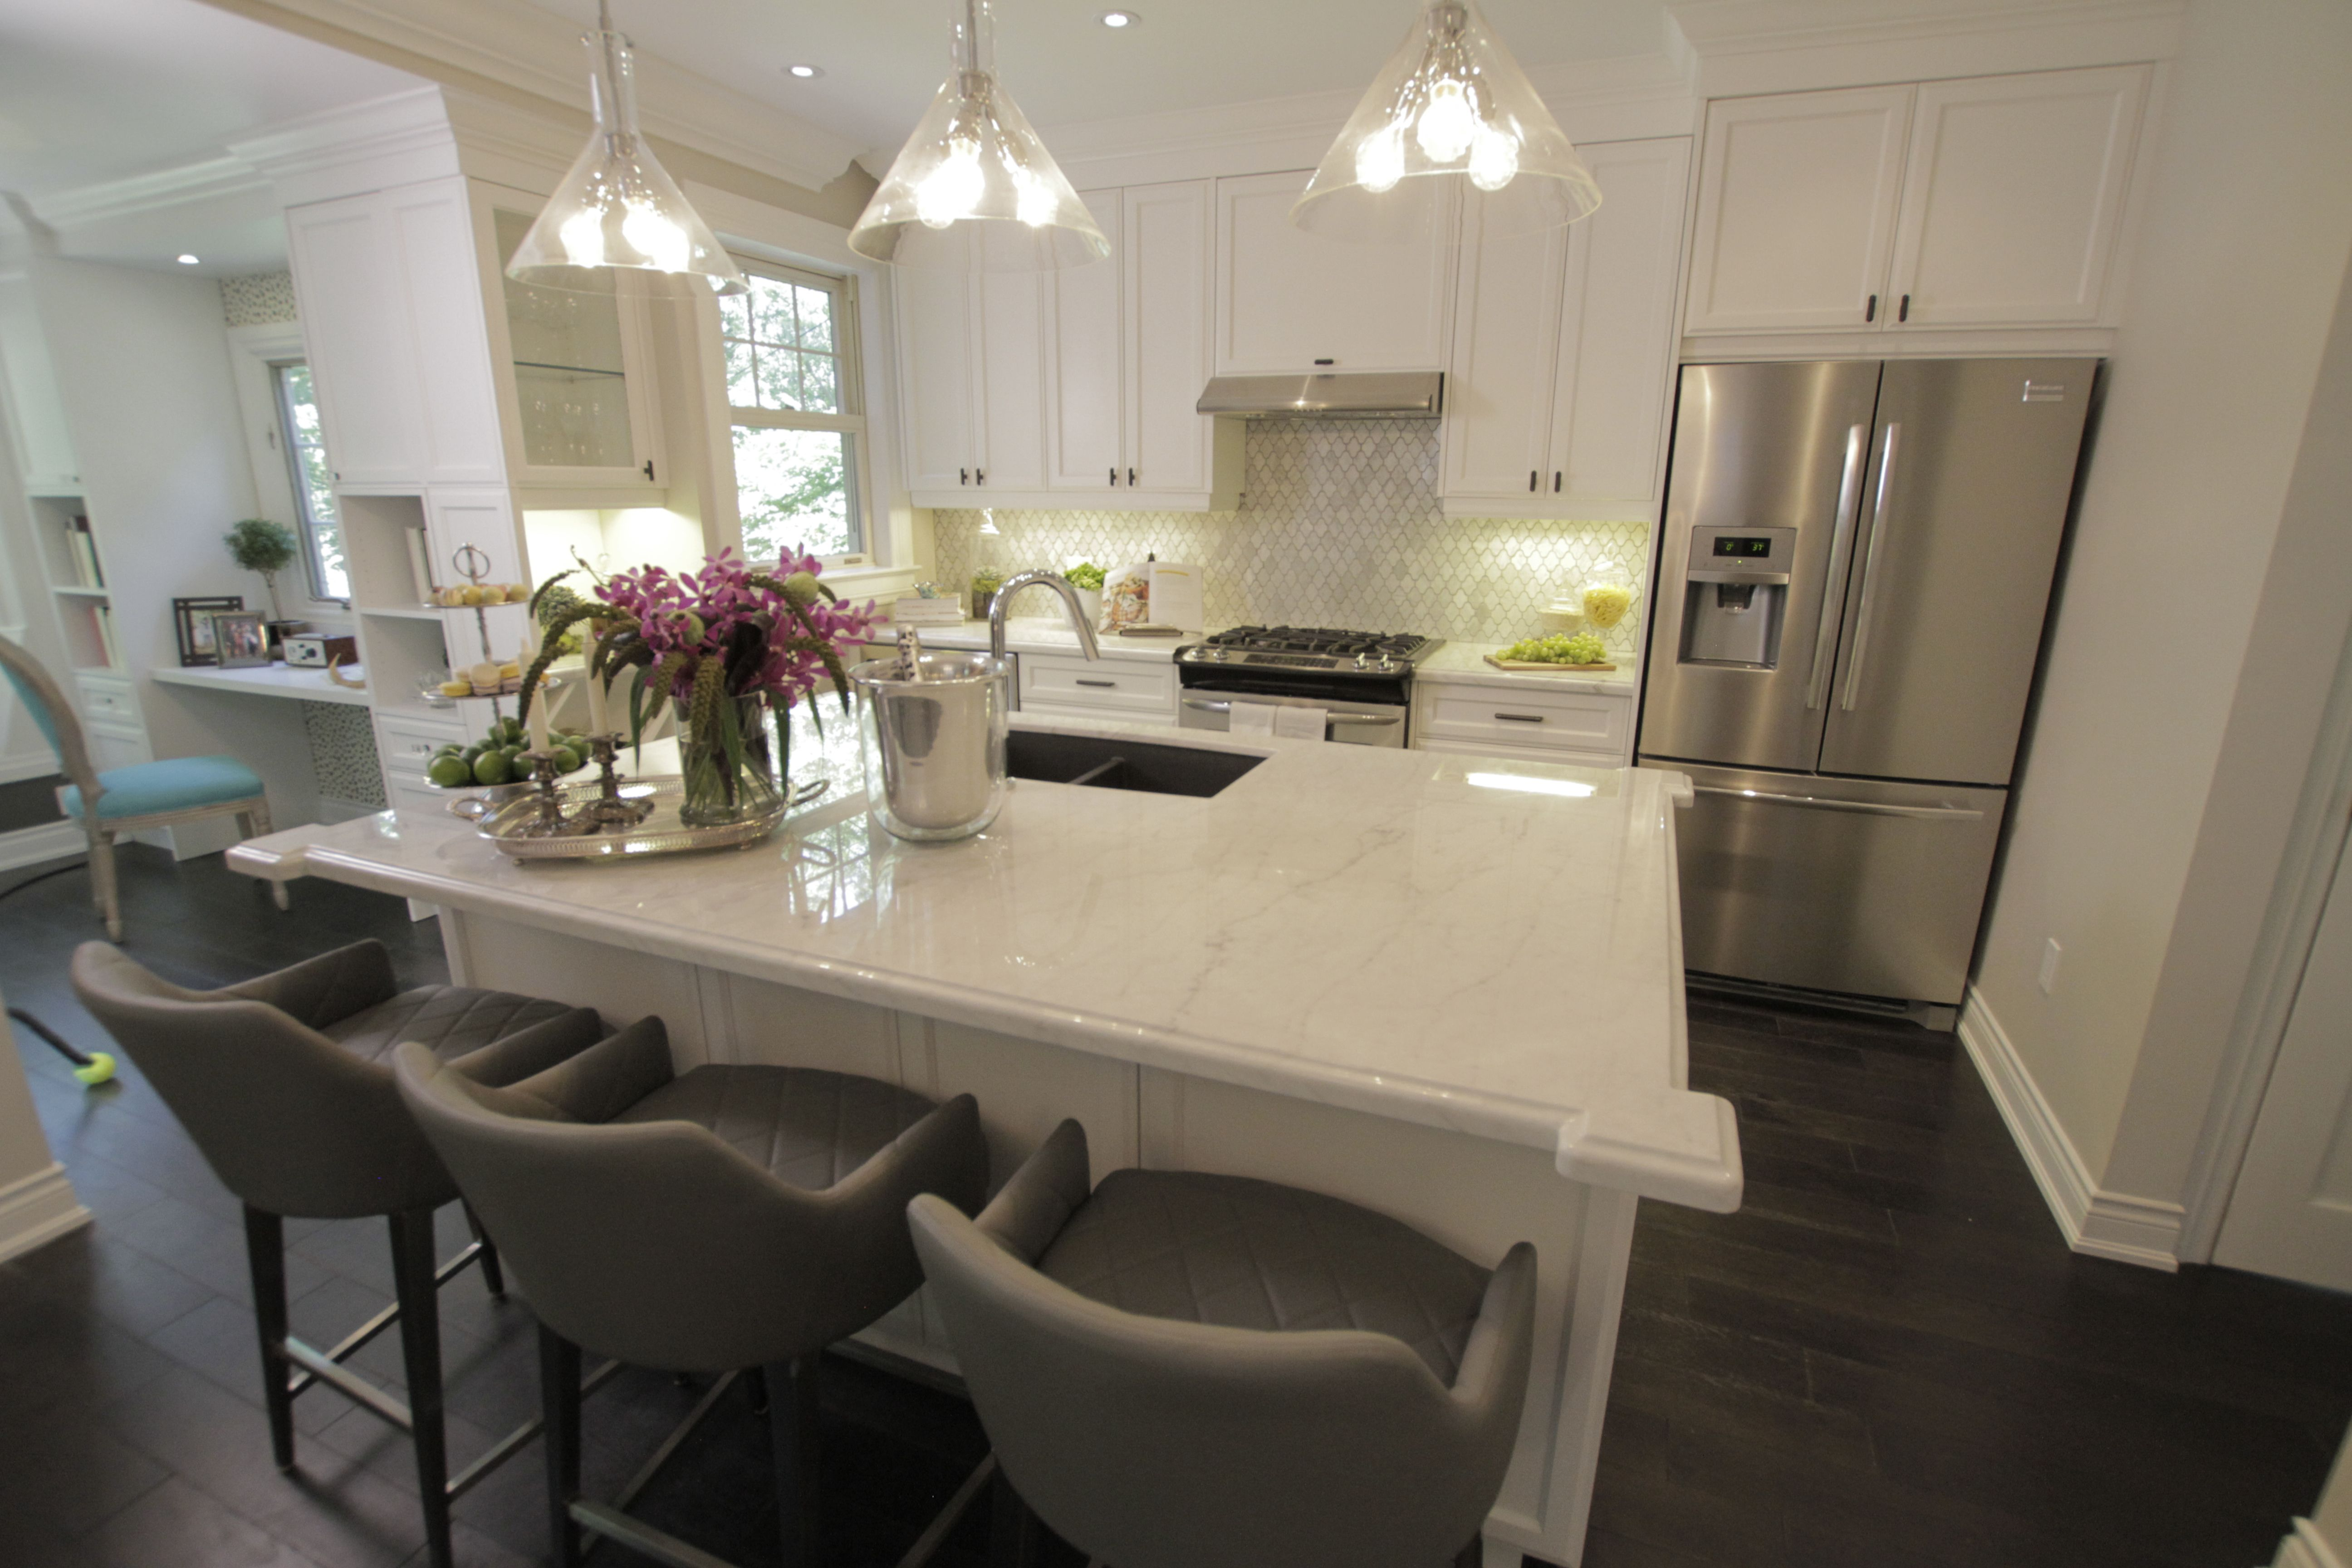 Awesome Kitchen Remodel by the Property Brothers, Jonathan and Drew ...